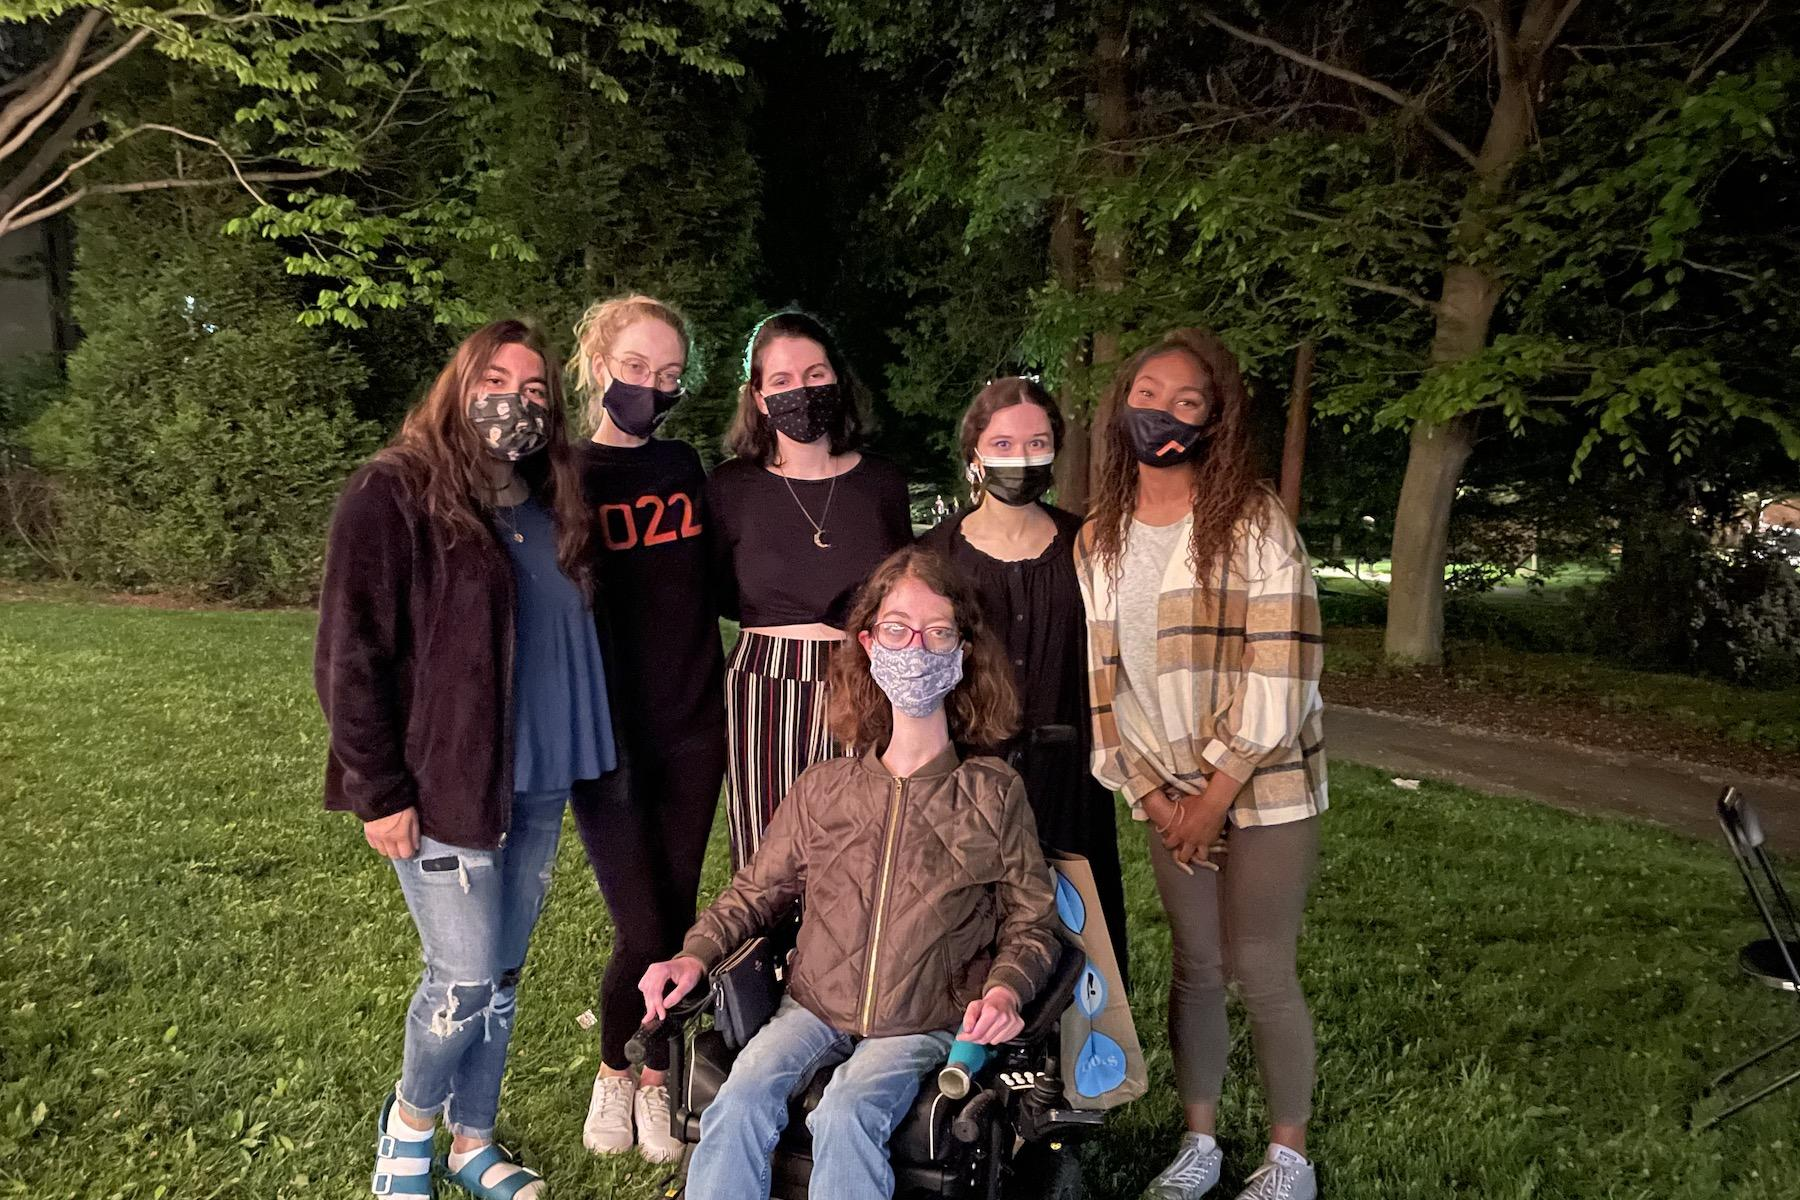 Naomi surrounded by five friends, all wearing masks